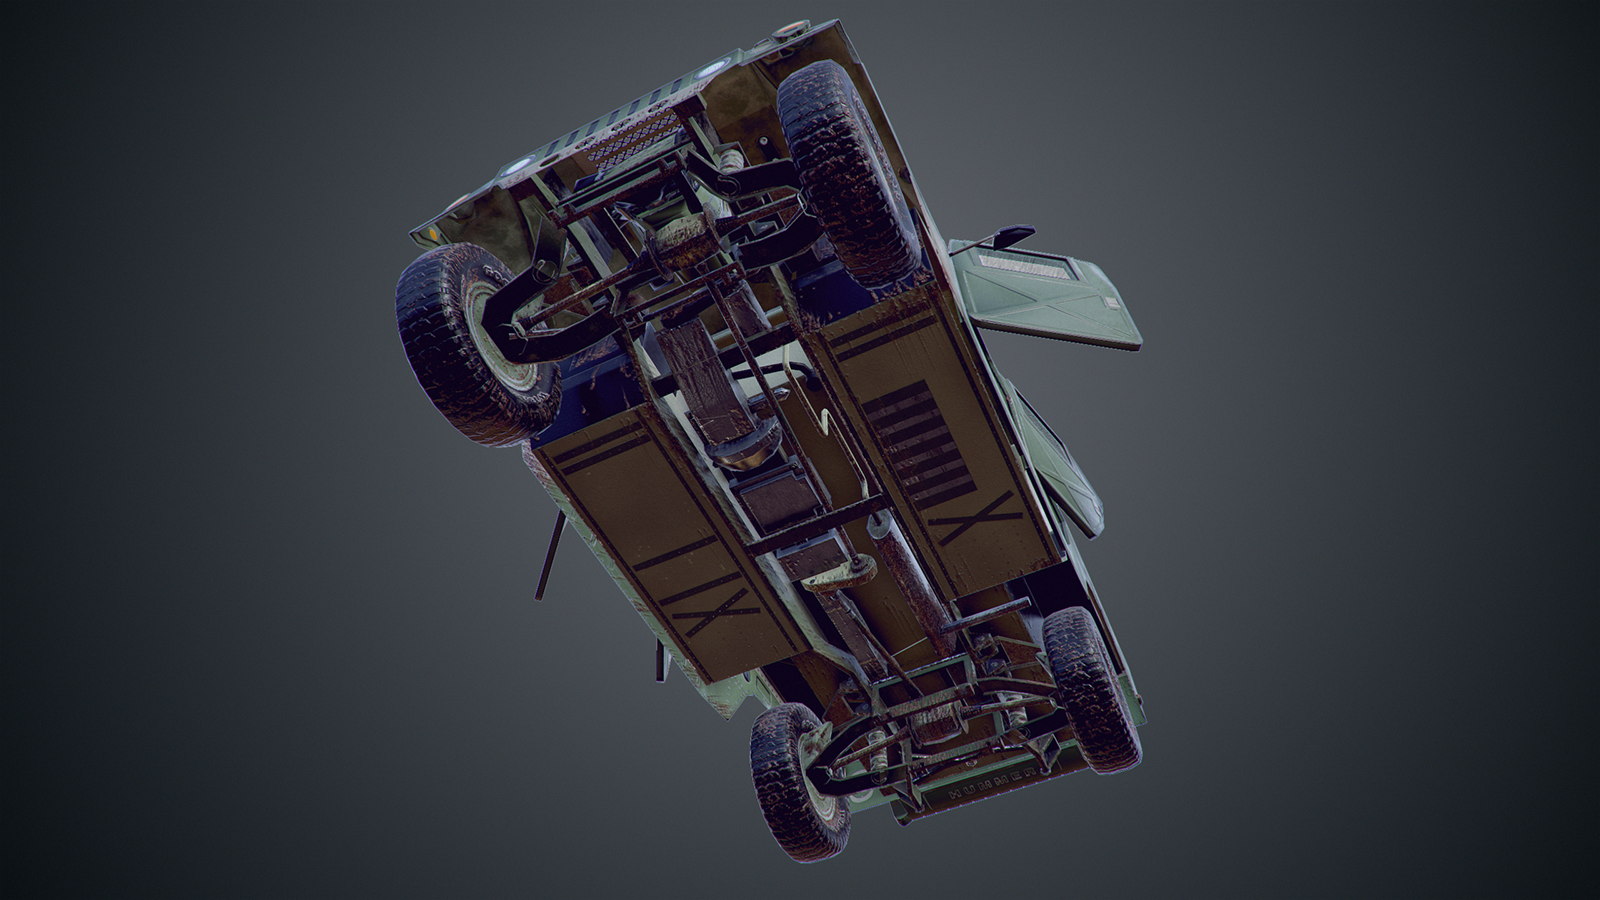 59429976acd69_HummerLowPoly02.png.0710797b009d32896e8683ef929b0483.png